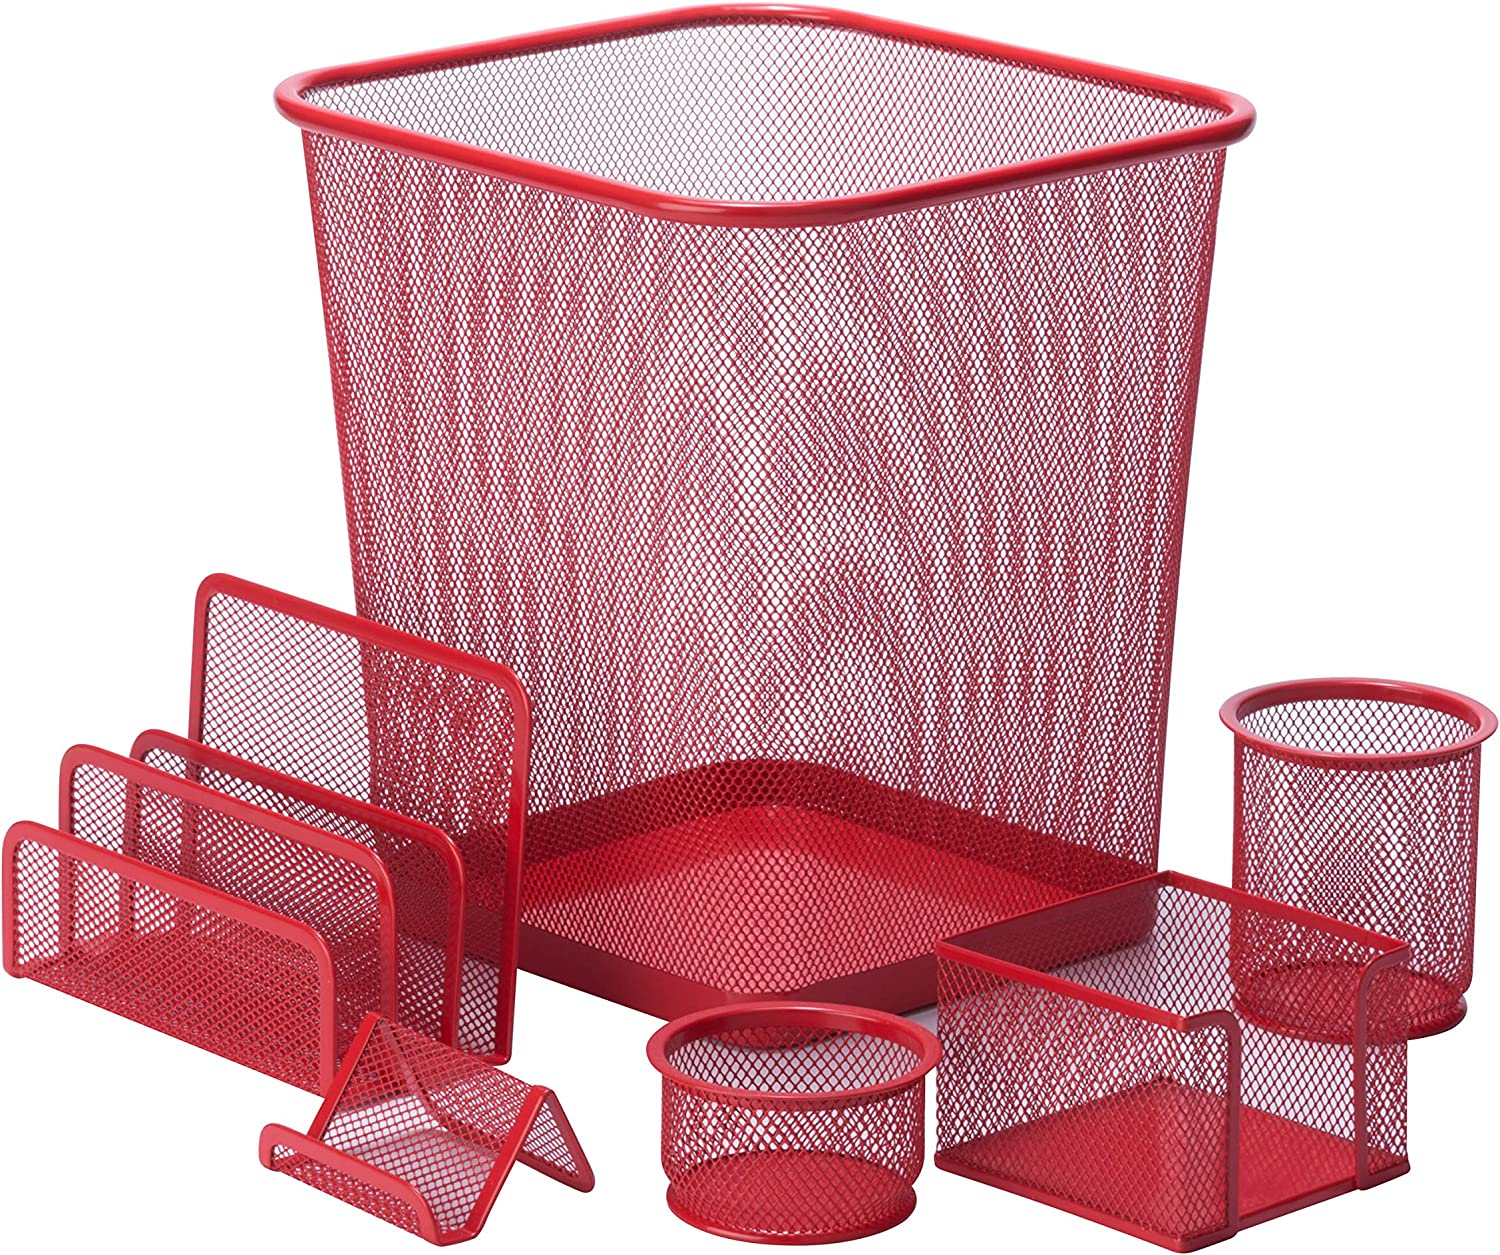 Honey-Can-Do 6-Piece Powder Coated Steel Mesh Desk Set, Red